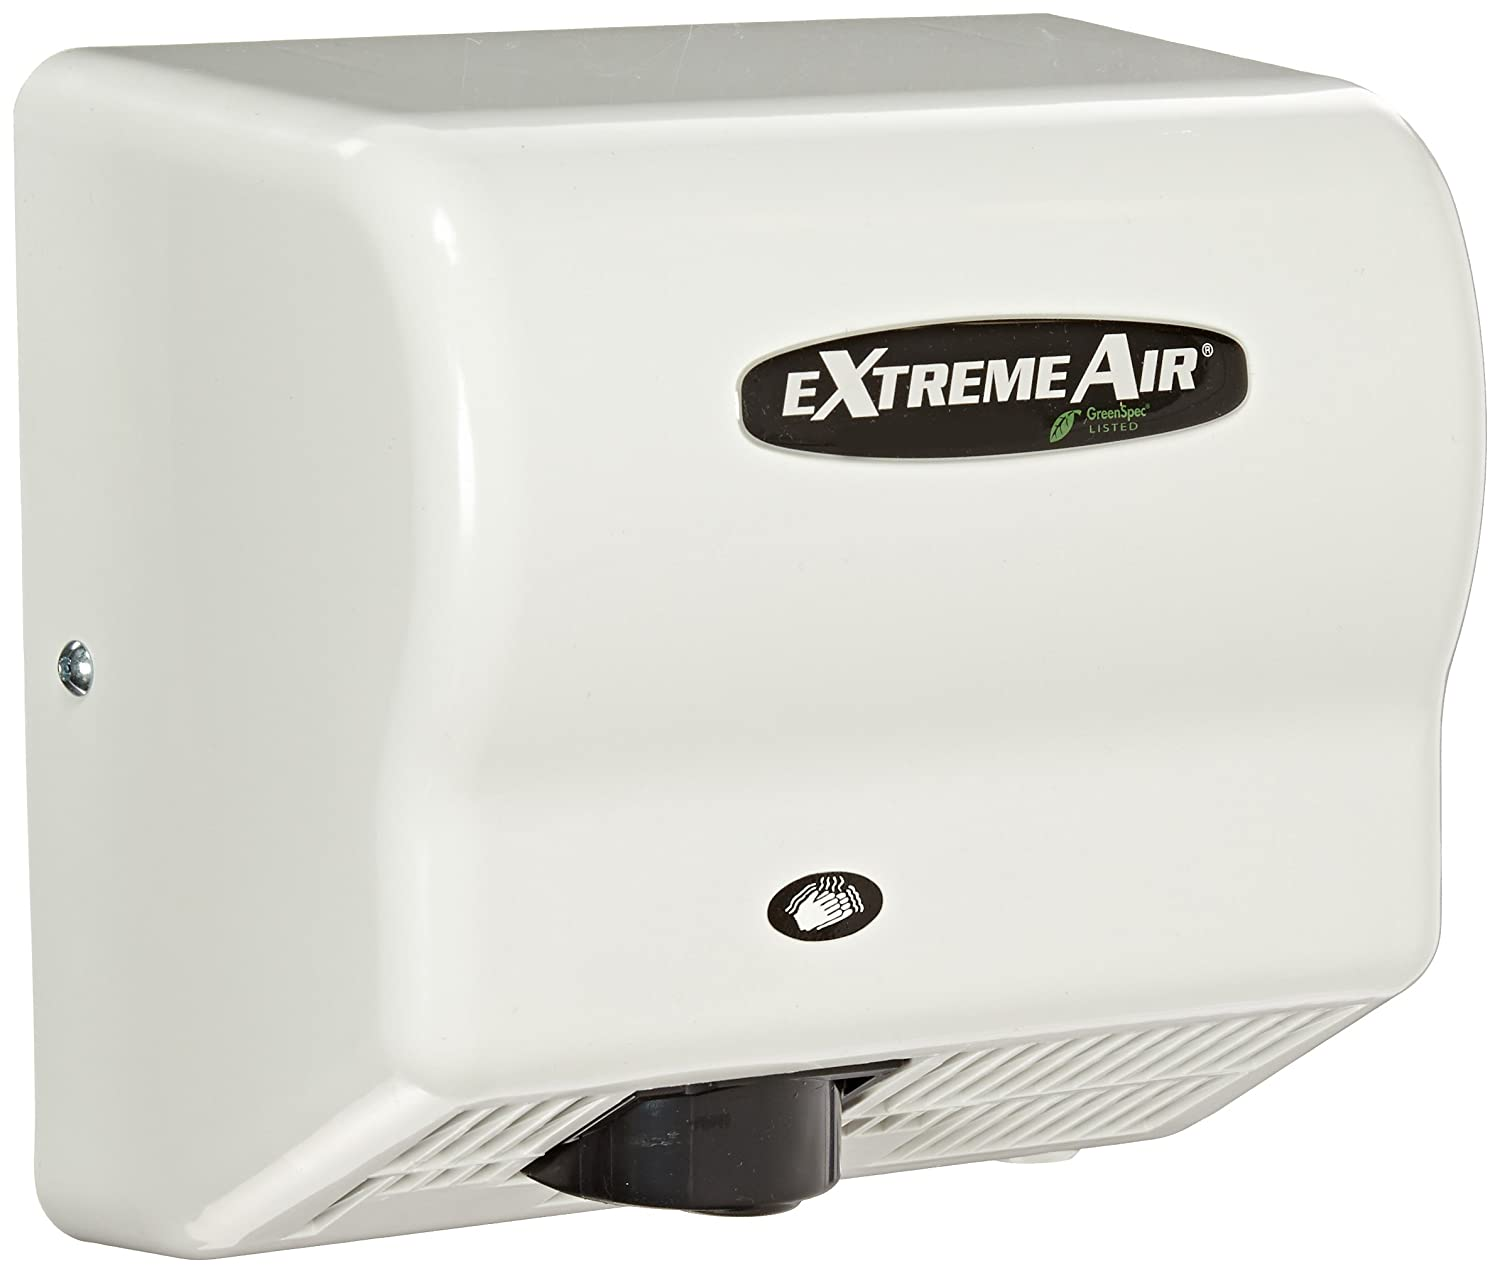 Image of American Dryer ExtremeAir GXT9 ABS Cover High-Speed Automatic Hand Dryer, 10-12 Second Dries, 100-240V, 1,500W Maximum Power, 50/60Hz, White Hand Dryers